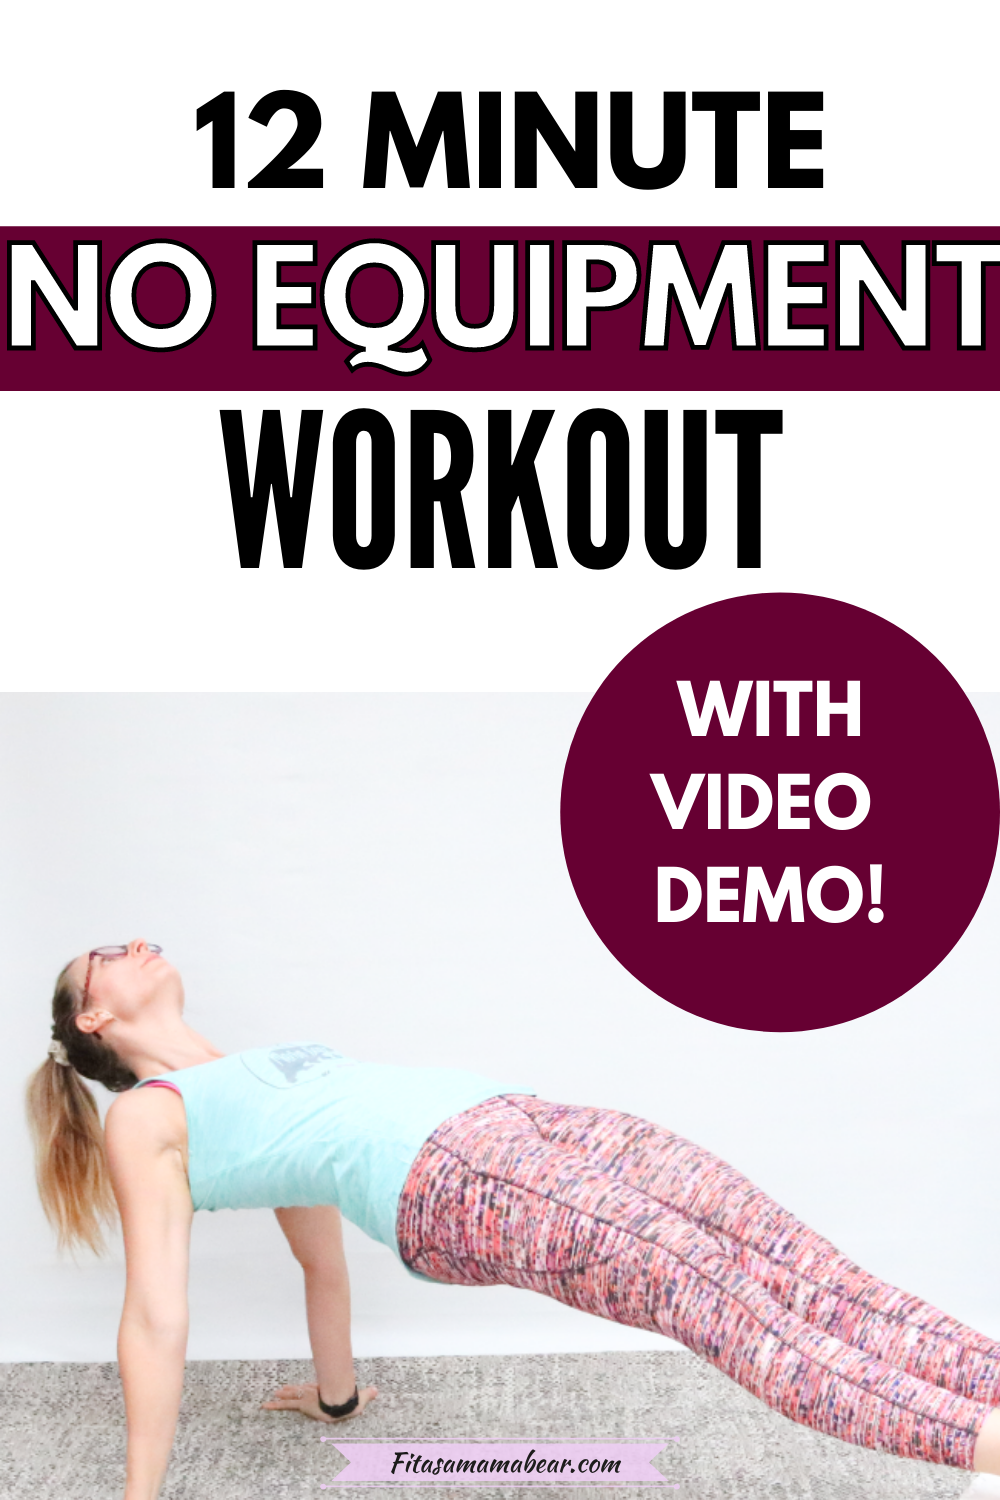 Pinterest image with text: woman in bright workout clothes performing a no equipment exercise